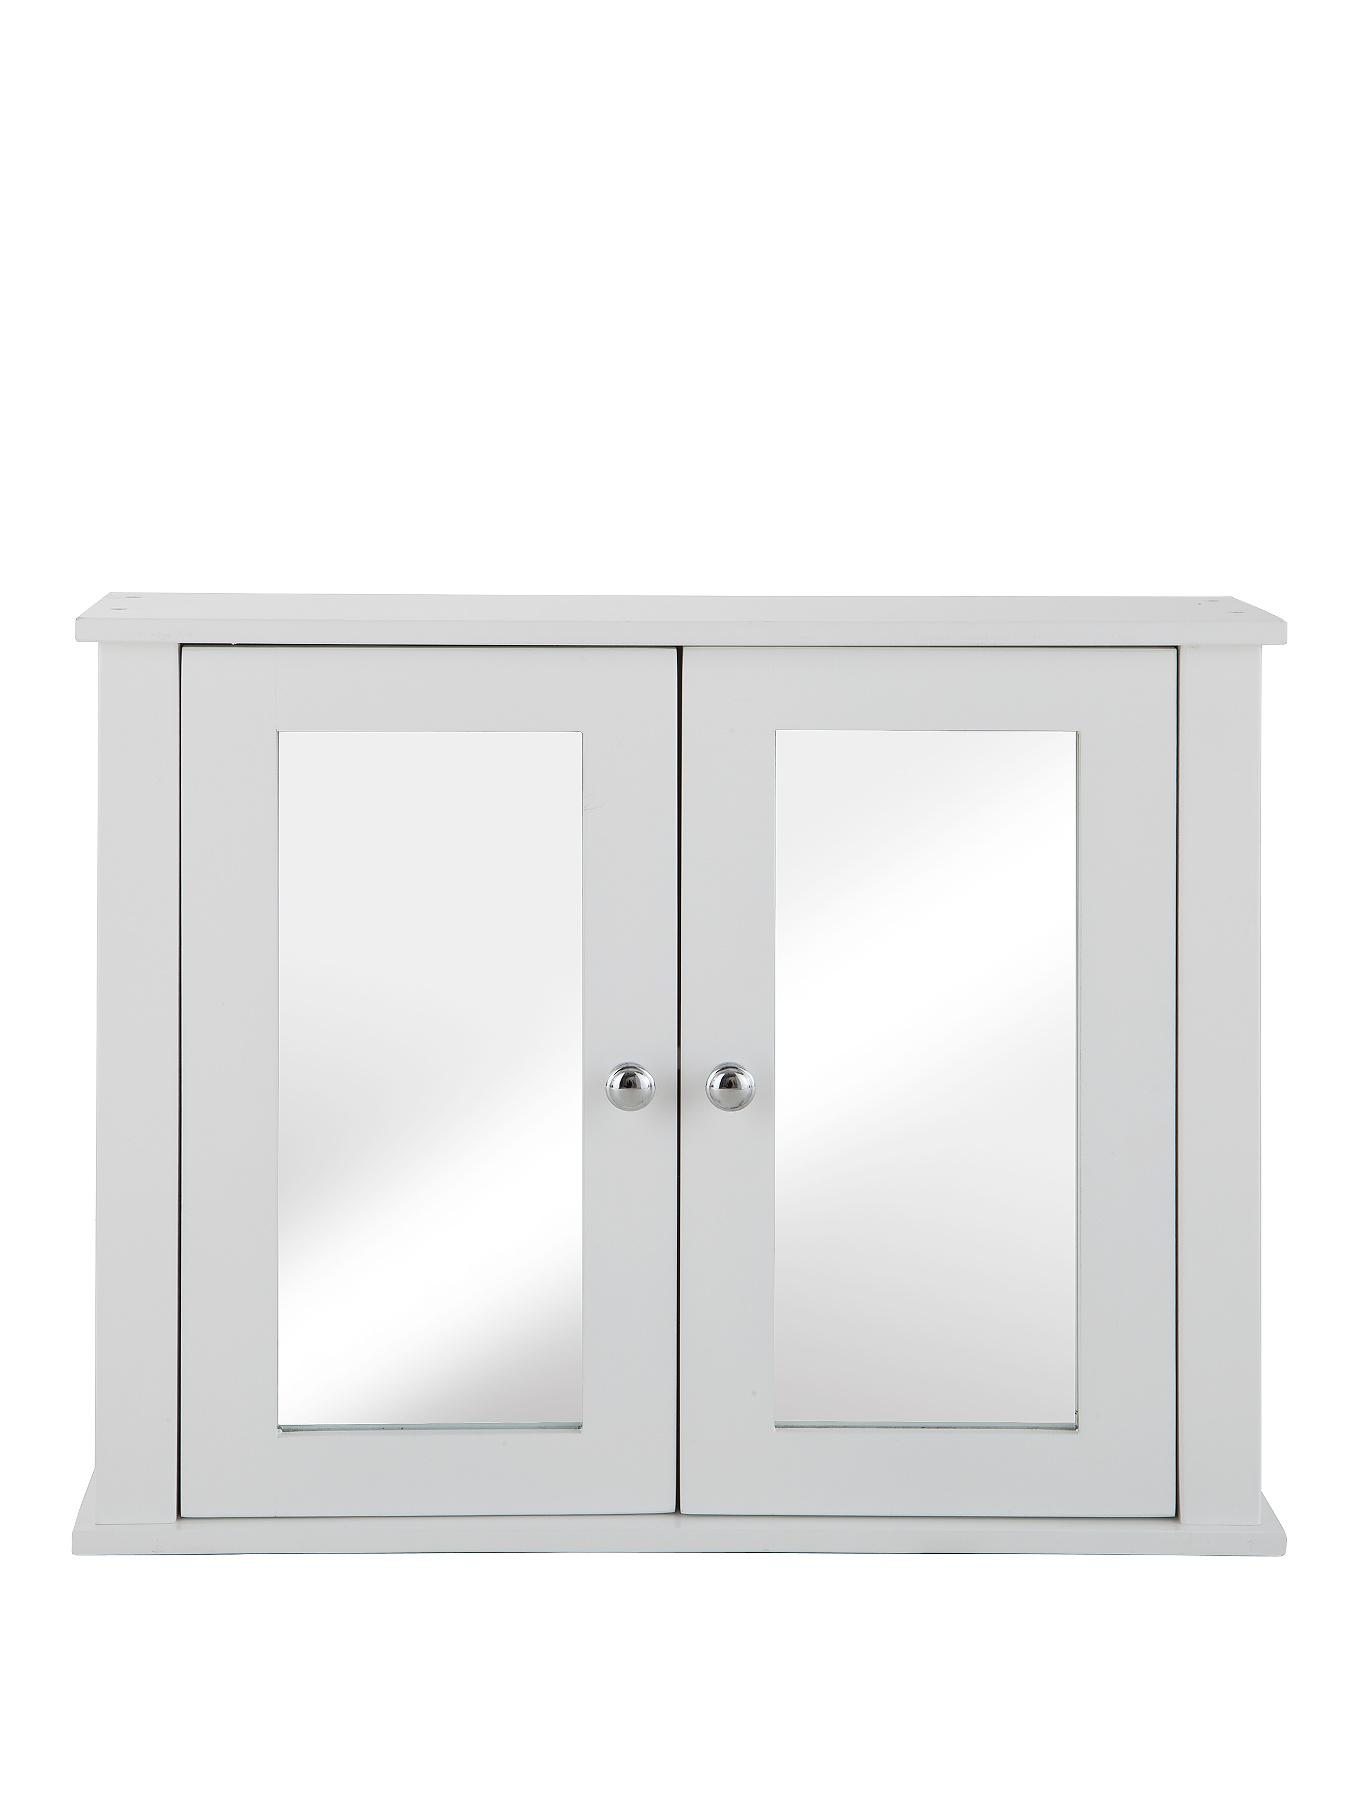 Newquay New Mirrored Wall Cabinet - White - White, White